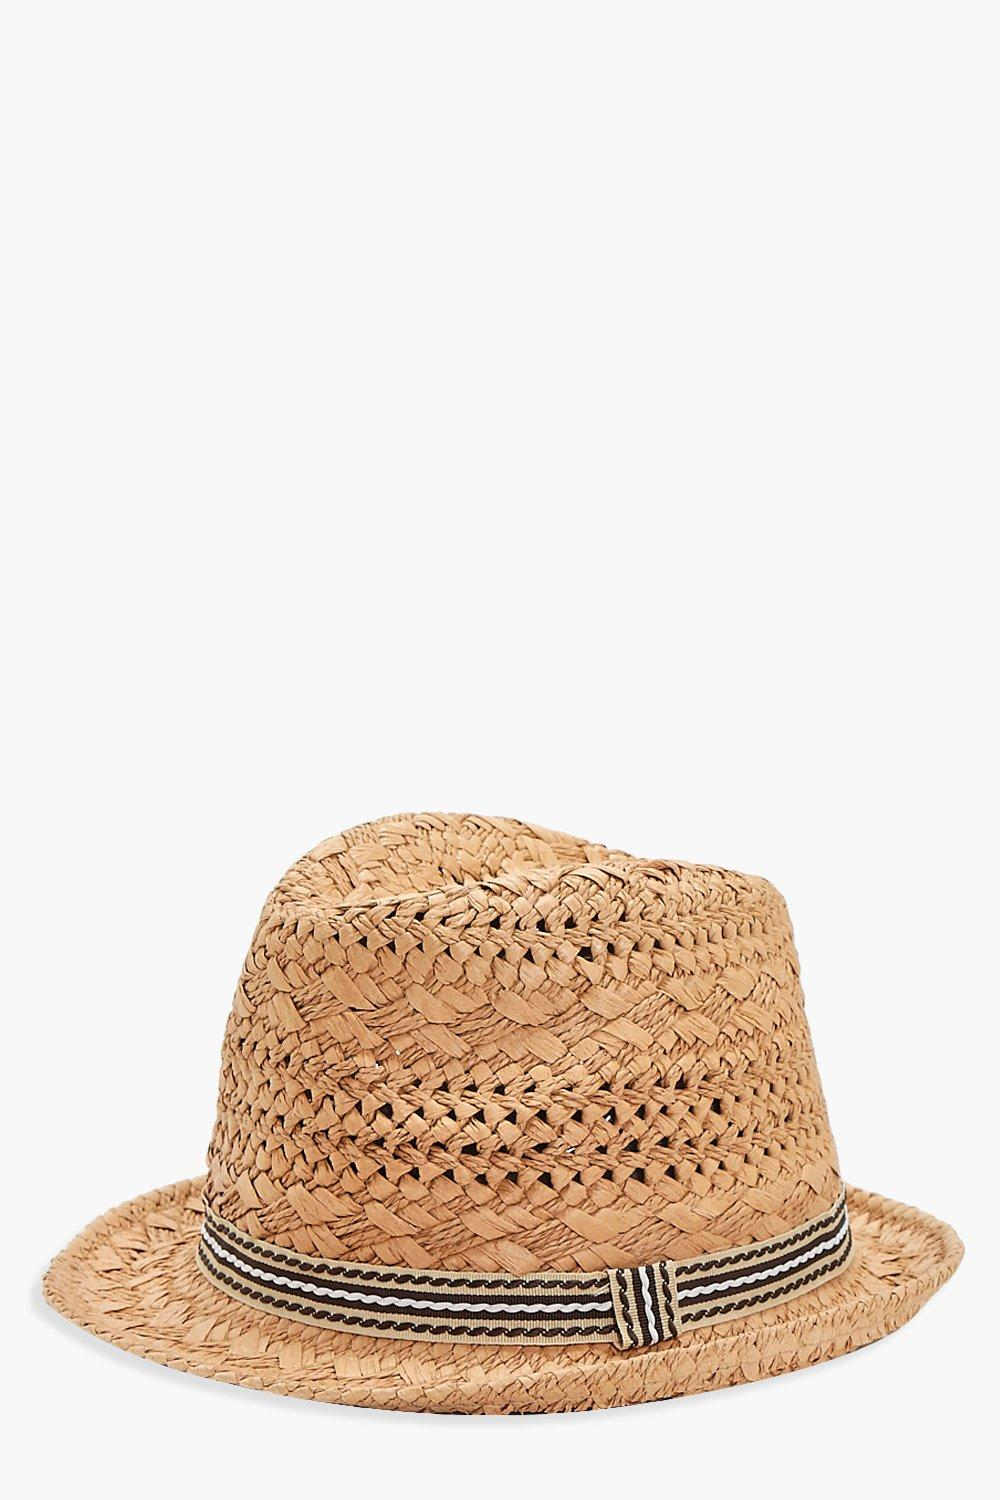 Friendship Bold Straw Hat - natural - Lola Friends